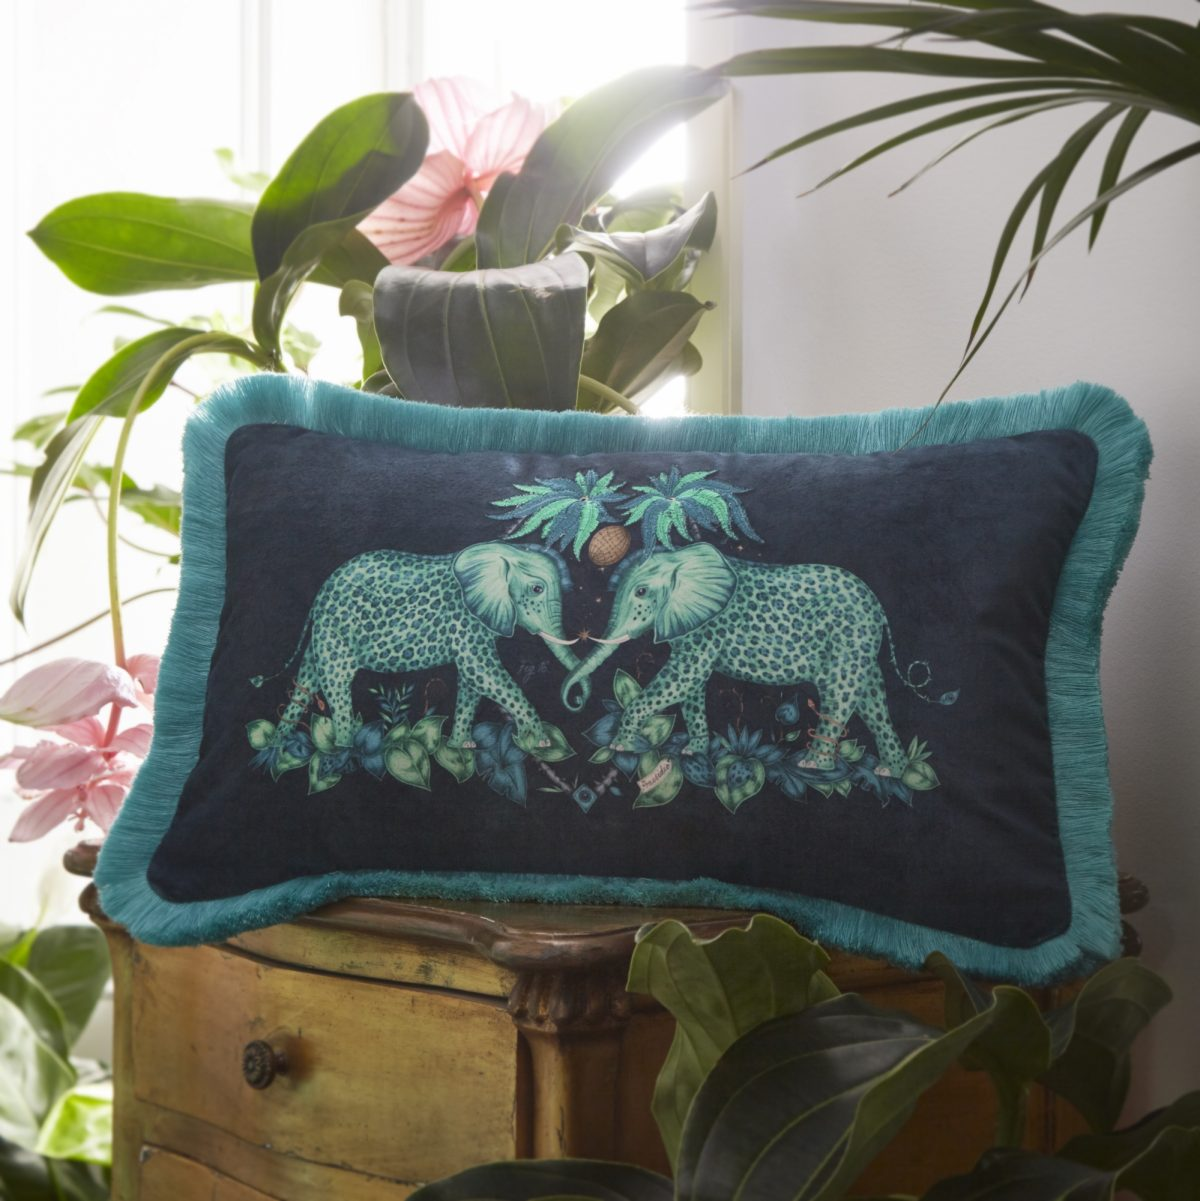 Emma Shippley Zambezi Cushion 02 No Usm